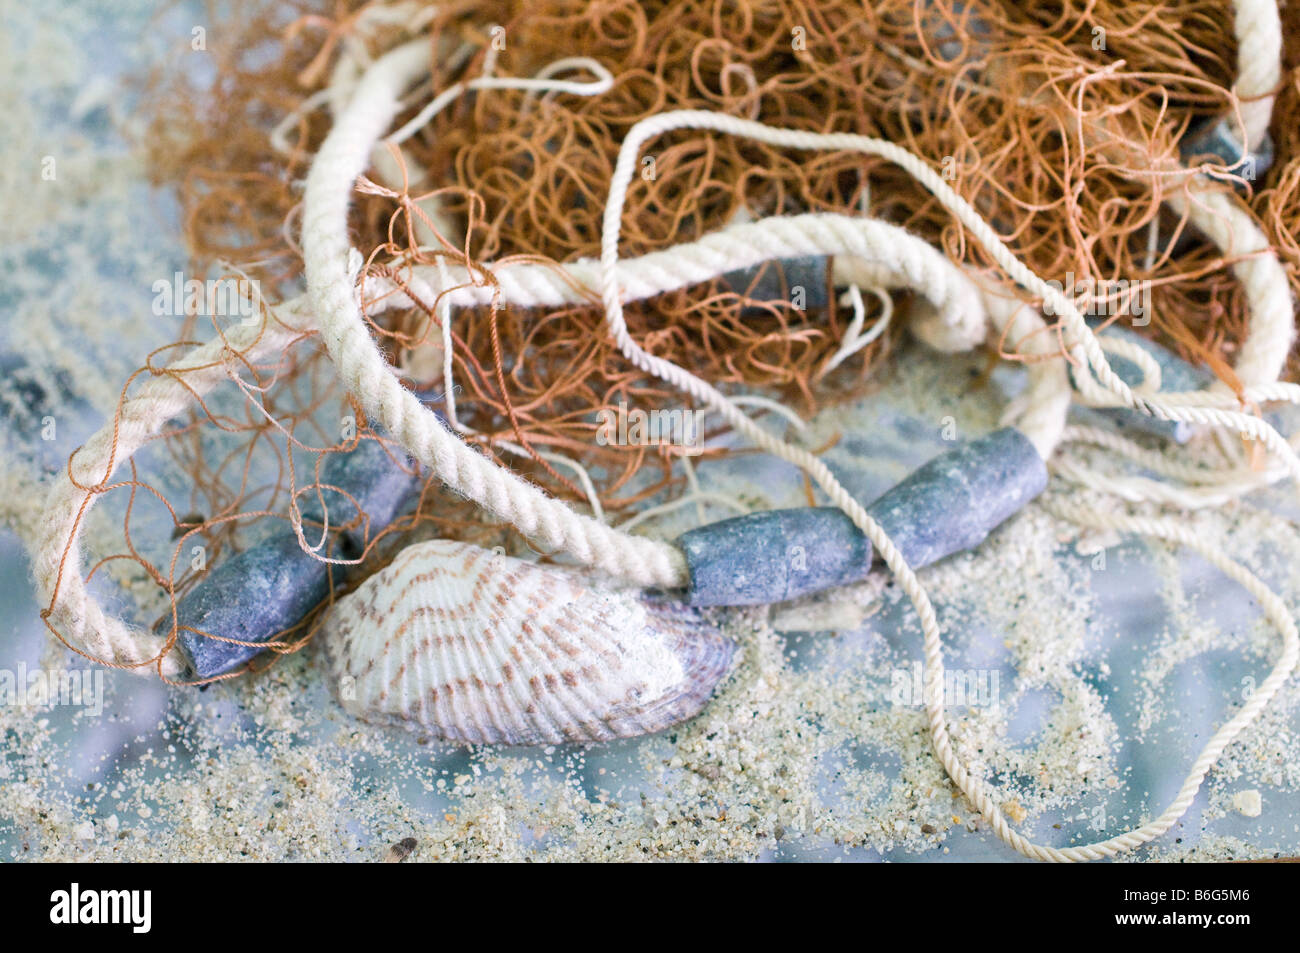 Close-up of fishnet, rope, seashell, and sand. - Stock Image